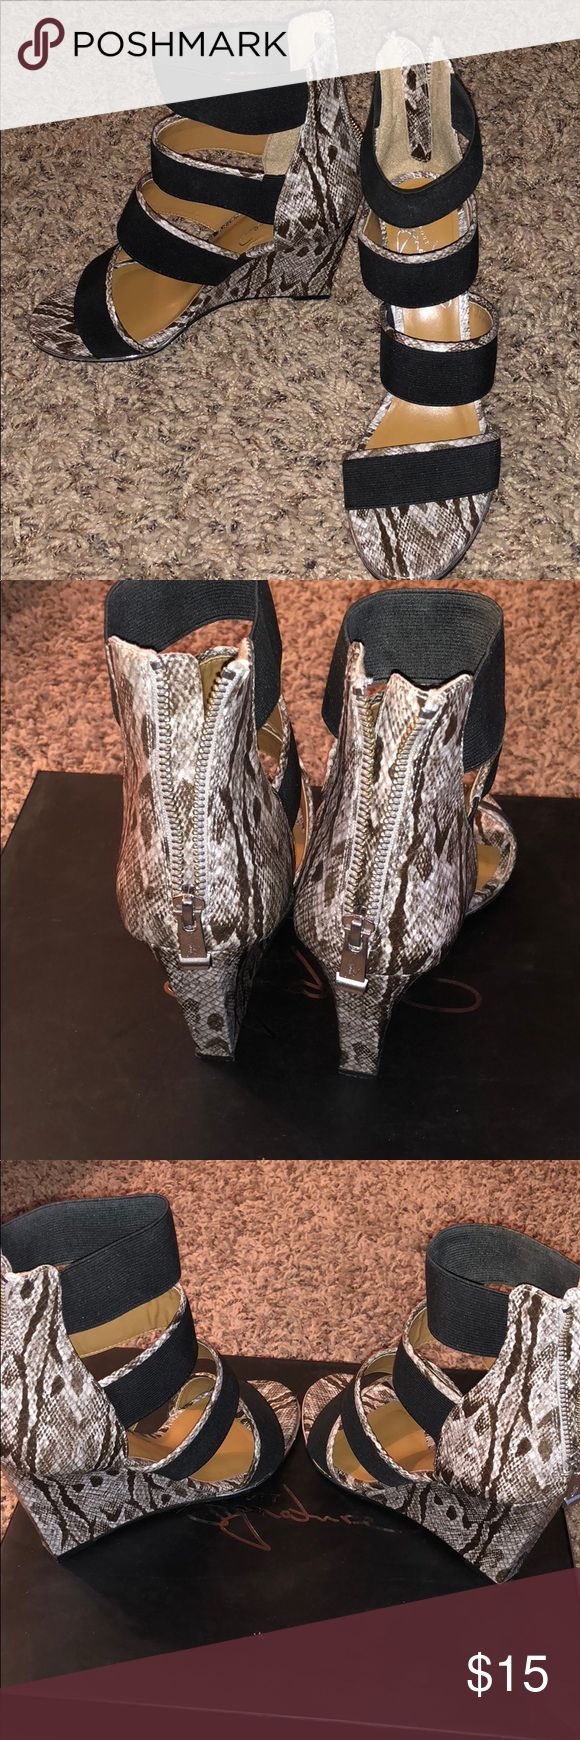 Report signature grays natural size 8 shoes Good condition report signature heeled strappy sandals! Report Signature Shoes Wedges